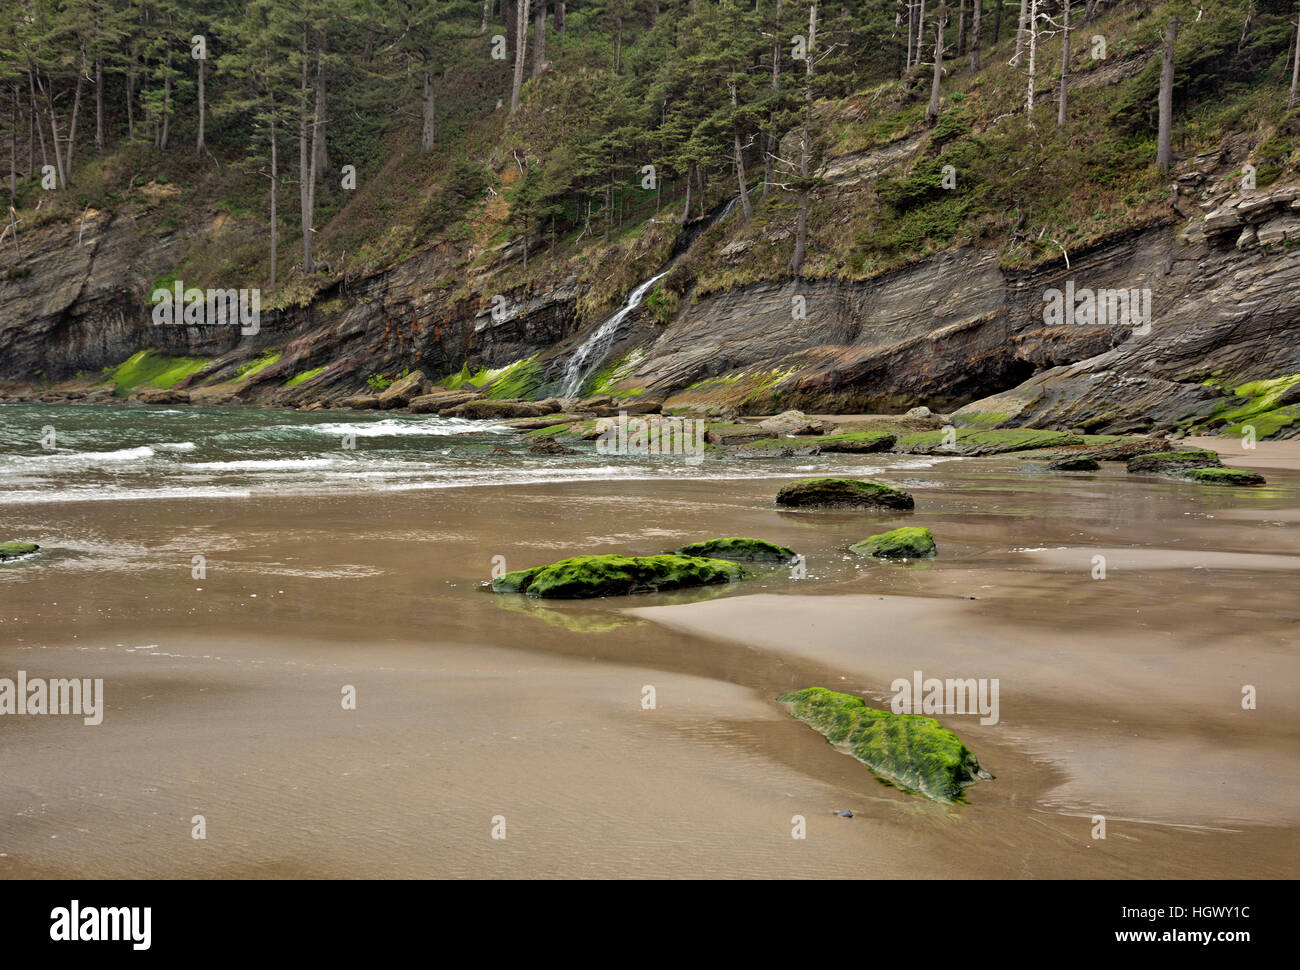 OR02316-00...OREGON - Blumenthal Falls plunging down the steep hillside to Short Sands Beach in Oswald West State - Stock Image